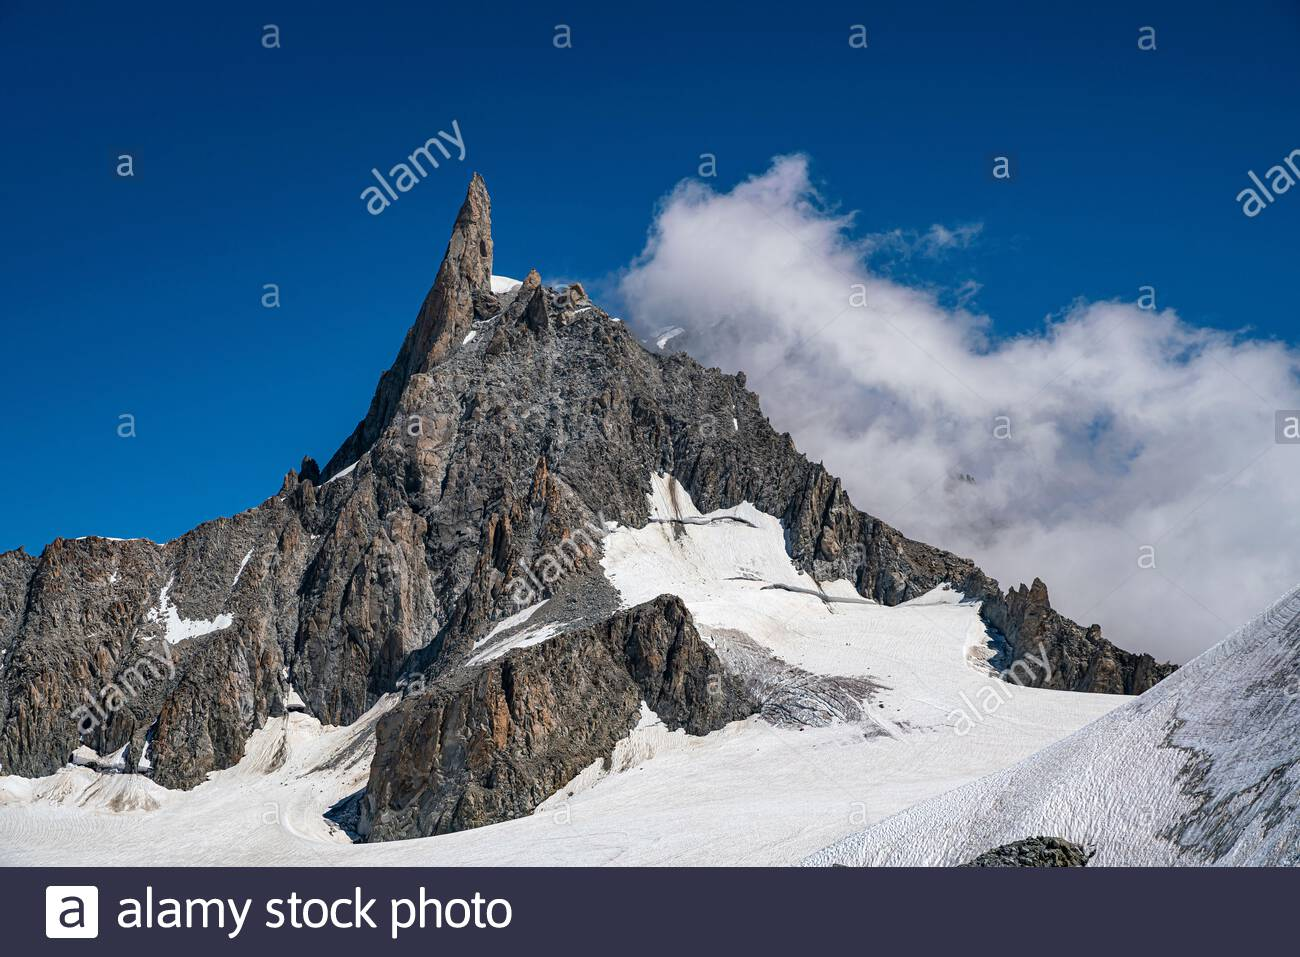 The Dent du Géant or Dente del Gigante (giant's tooth) is a mountain (4,013 m) in the Mont Blanc massif situated between France and Italy. Stock Photo